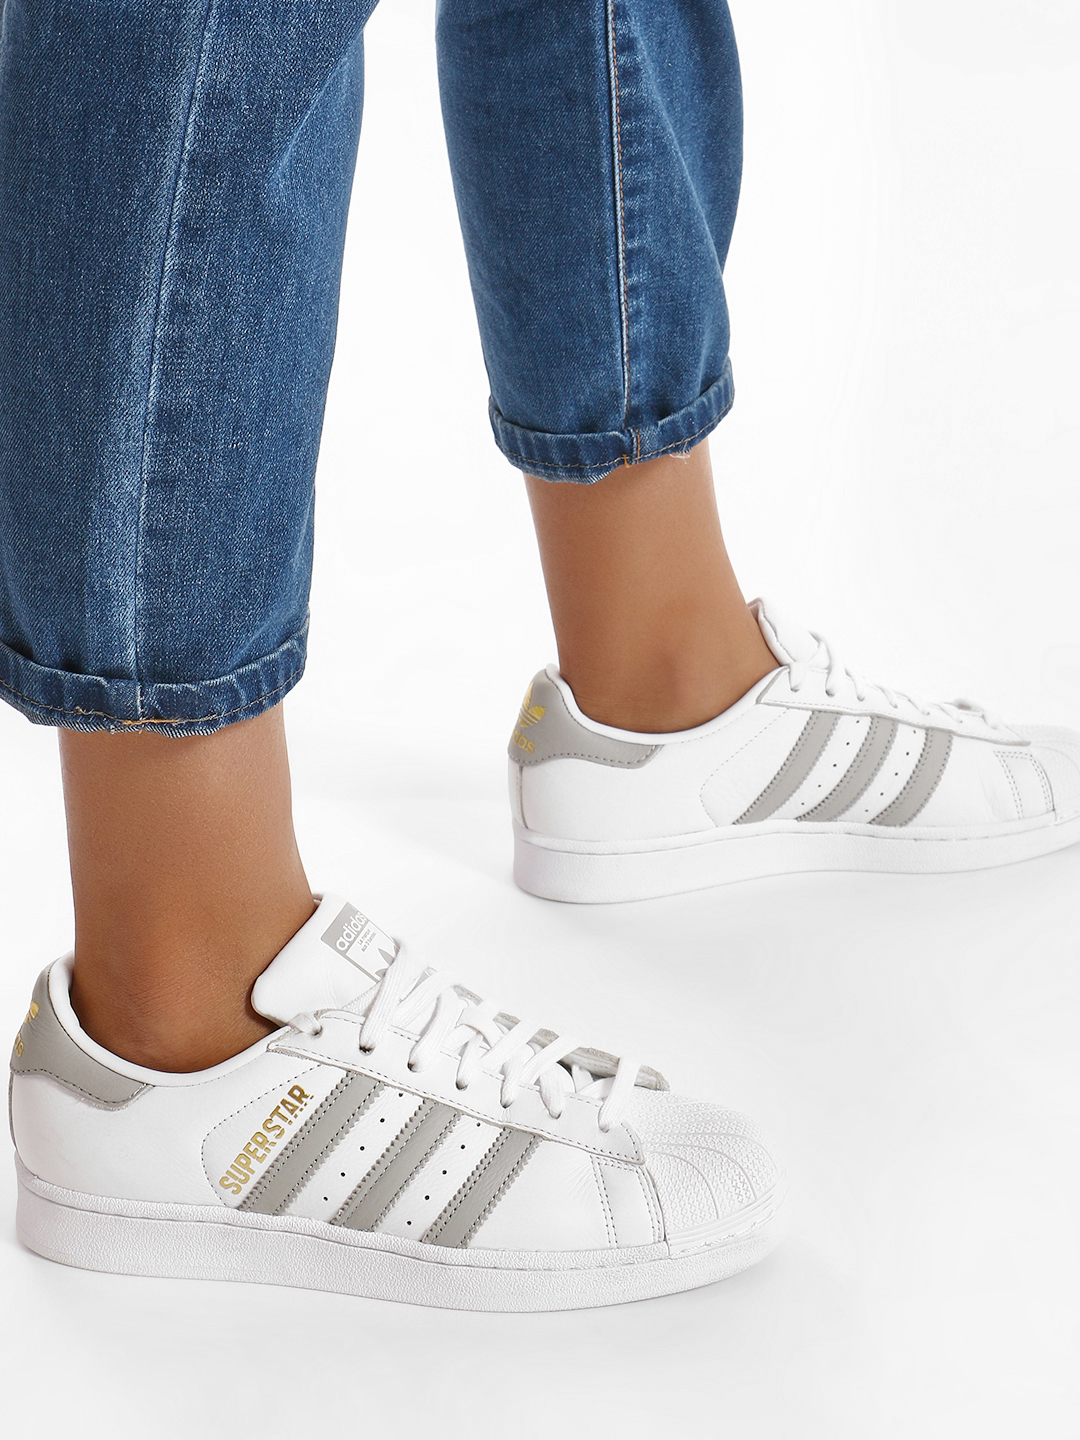 Adidas Originals White Superstar Shoes 1